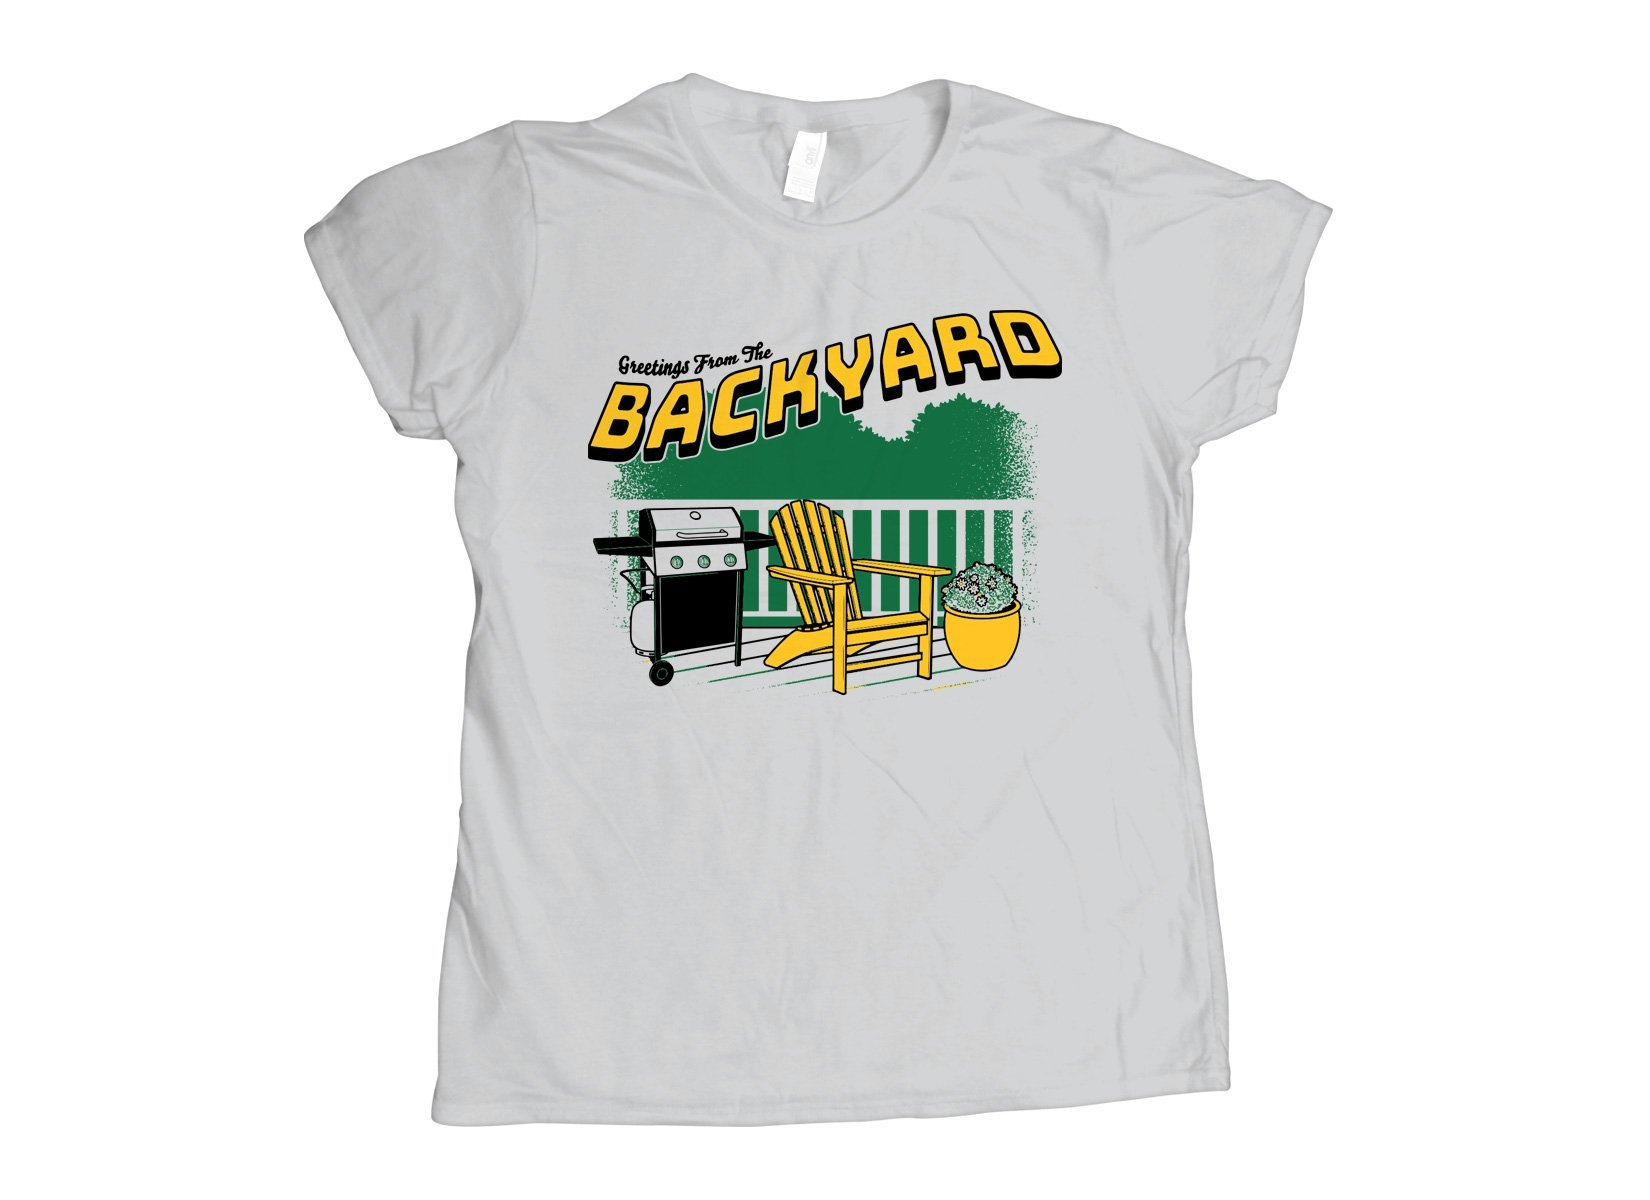 Greetings From The Backyard on Womens T-Shirt